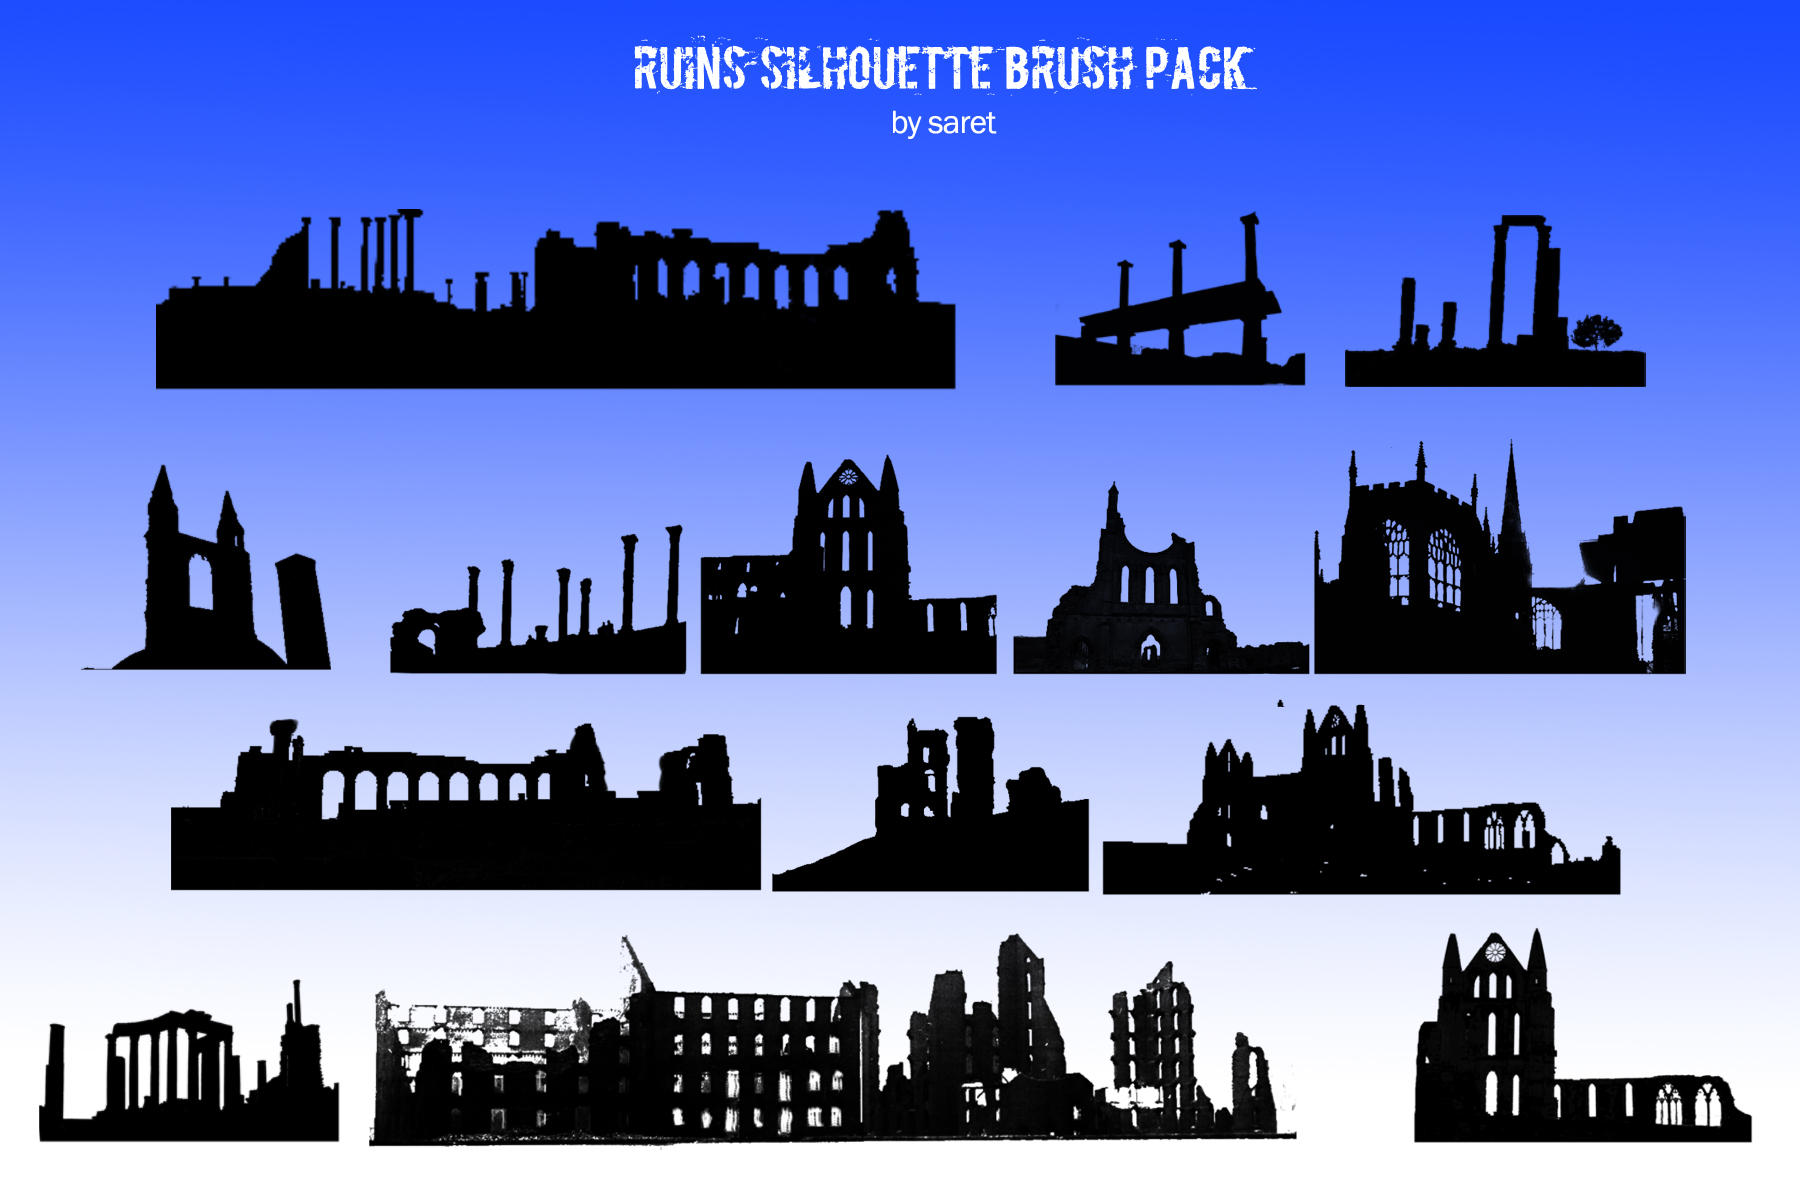 Building Ruin Silhouette Brush Pack by saret